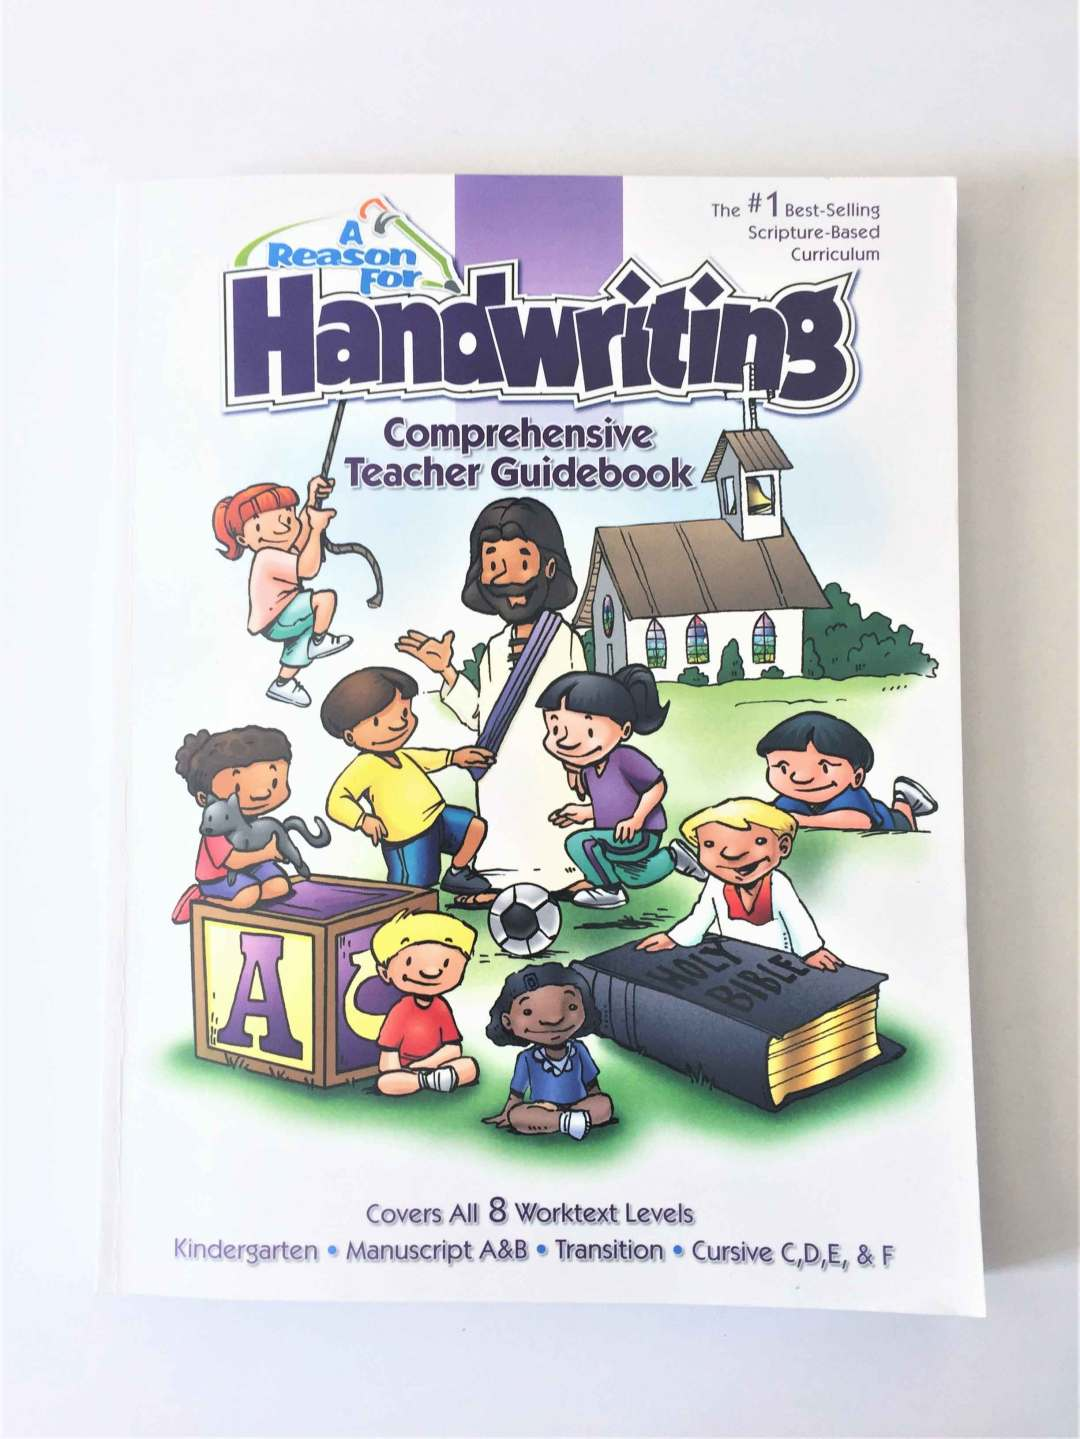 REVIEW: A Reason for Handwriting Book A